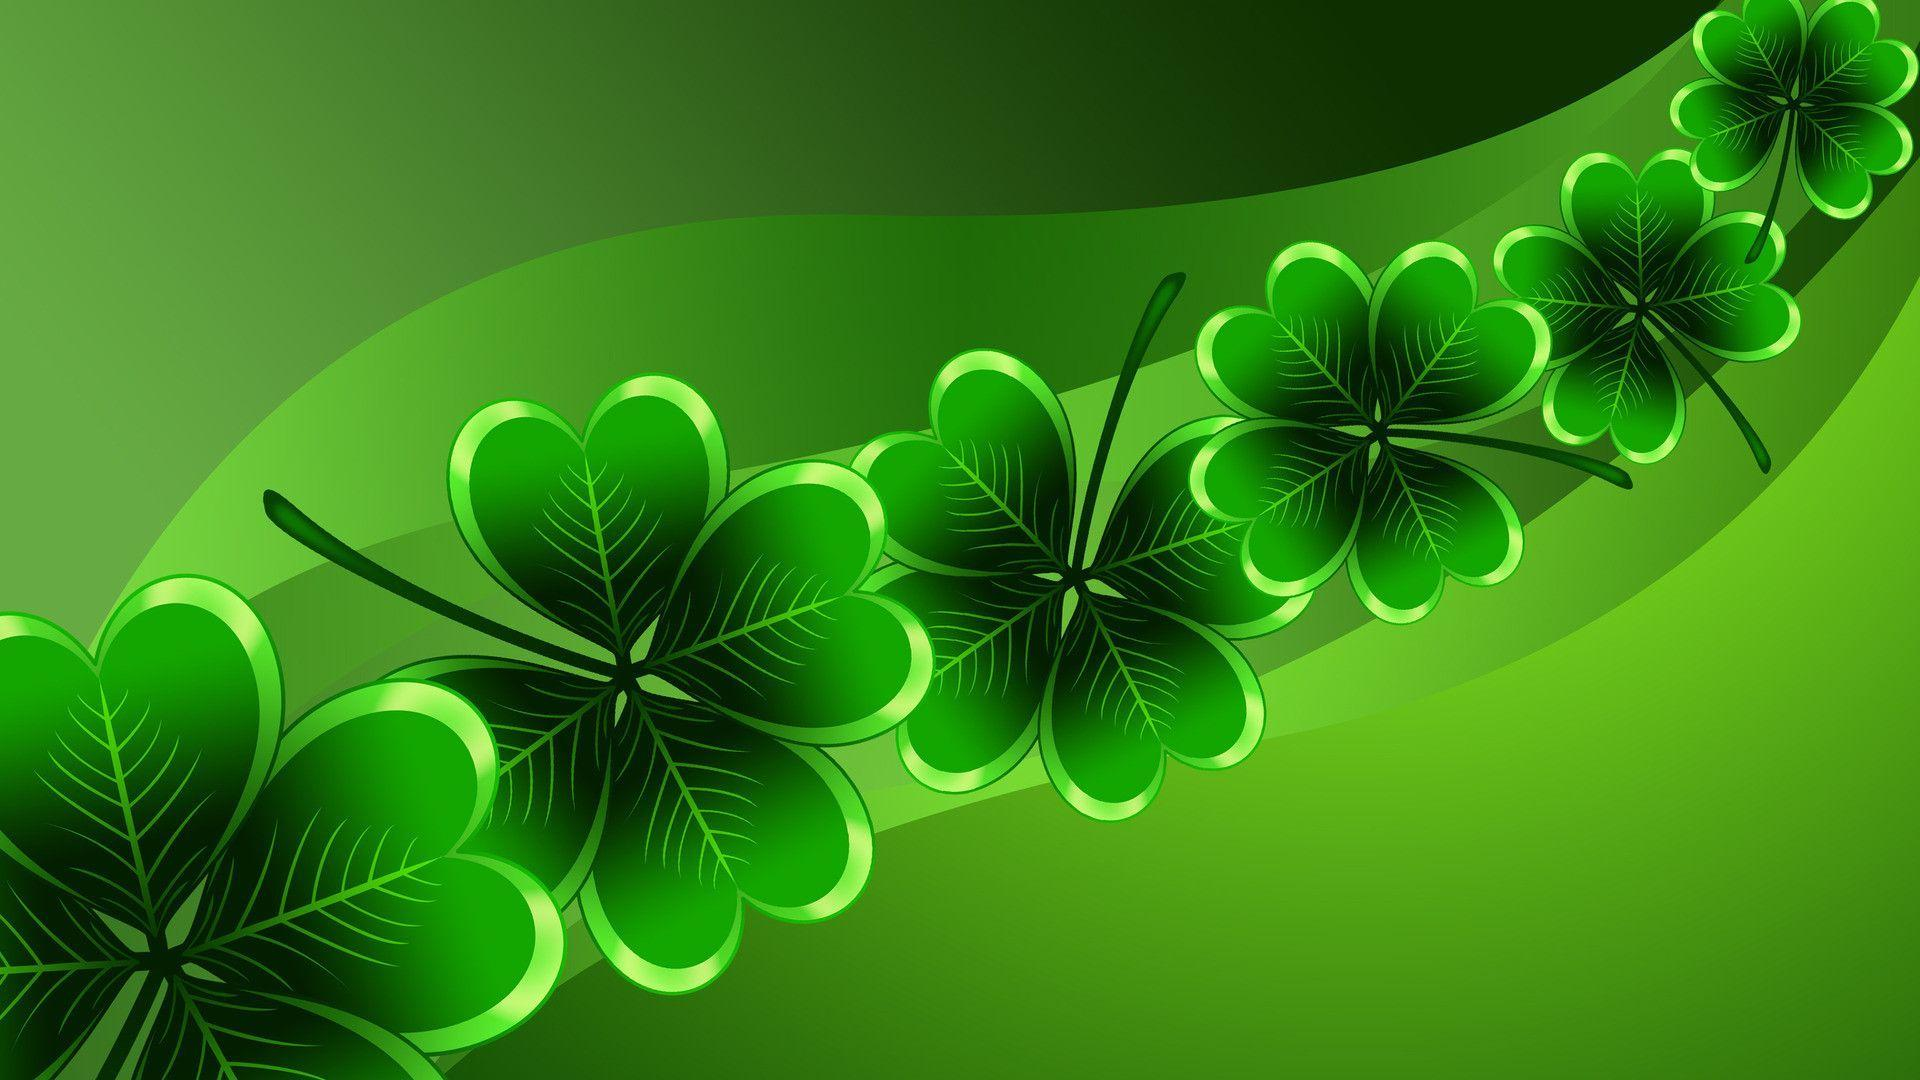 Wallpapers For > St Patricks Day Wallpapers